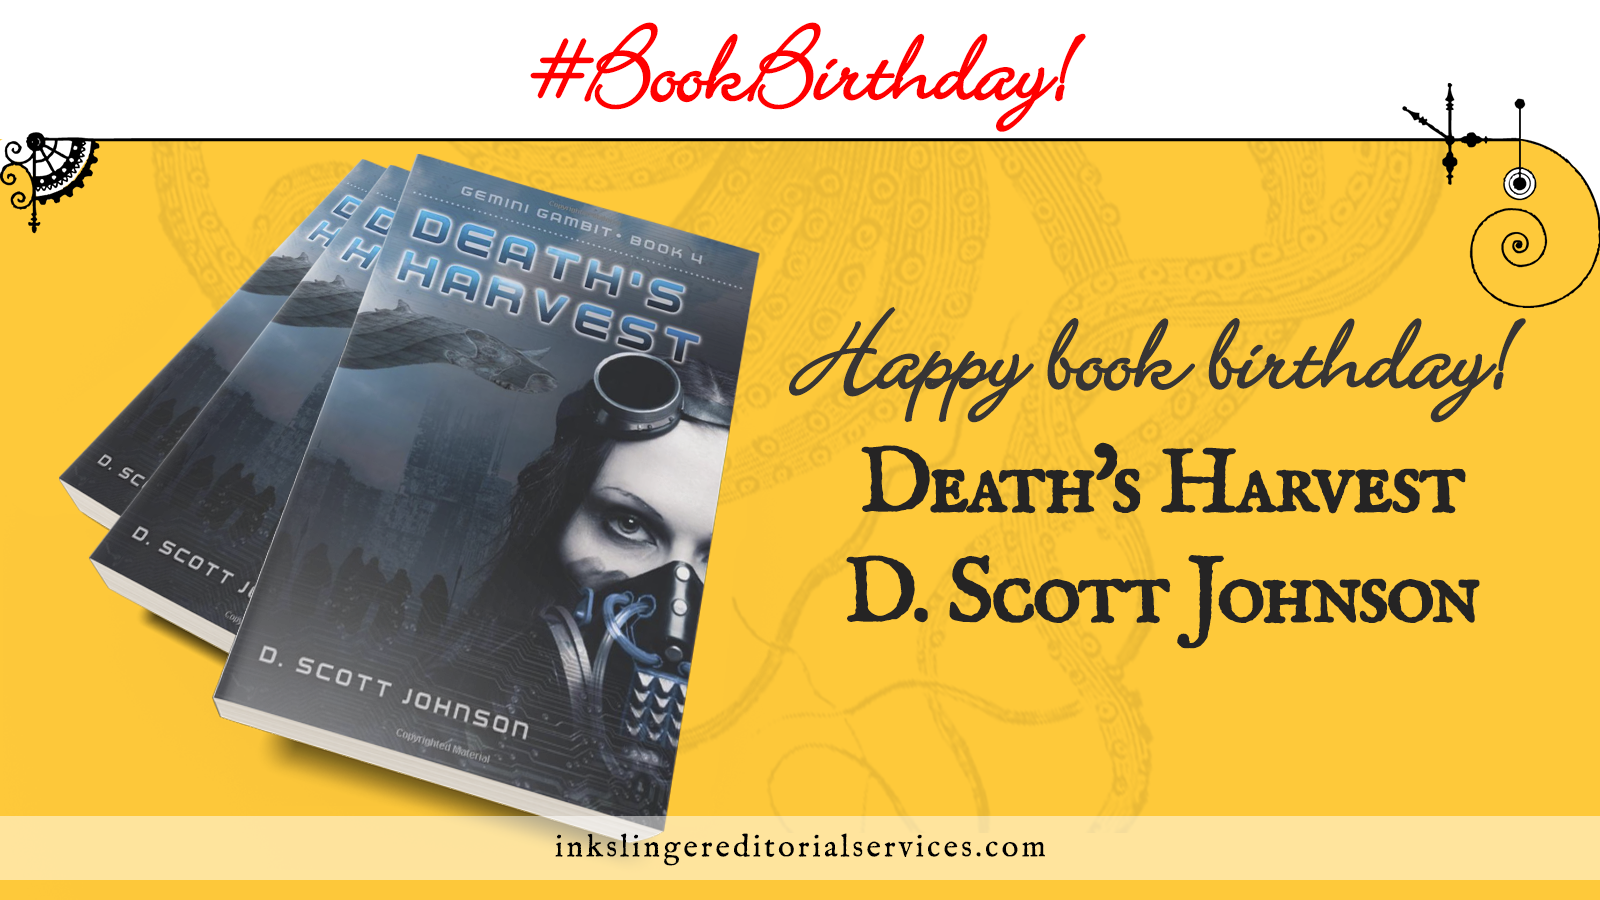 #BookBirthday Happy book birthday Death's Harvest by D. Scott Johnson. Three copies of Death's Harvest are stacked over a yellow field with faded tentacles.